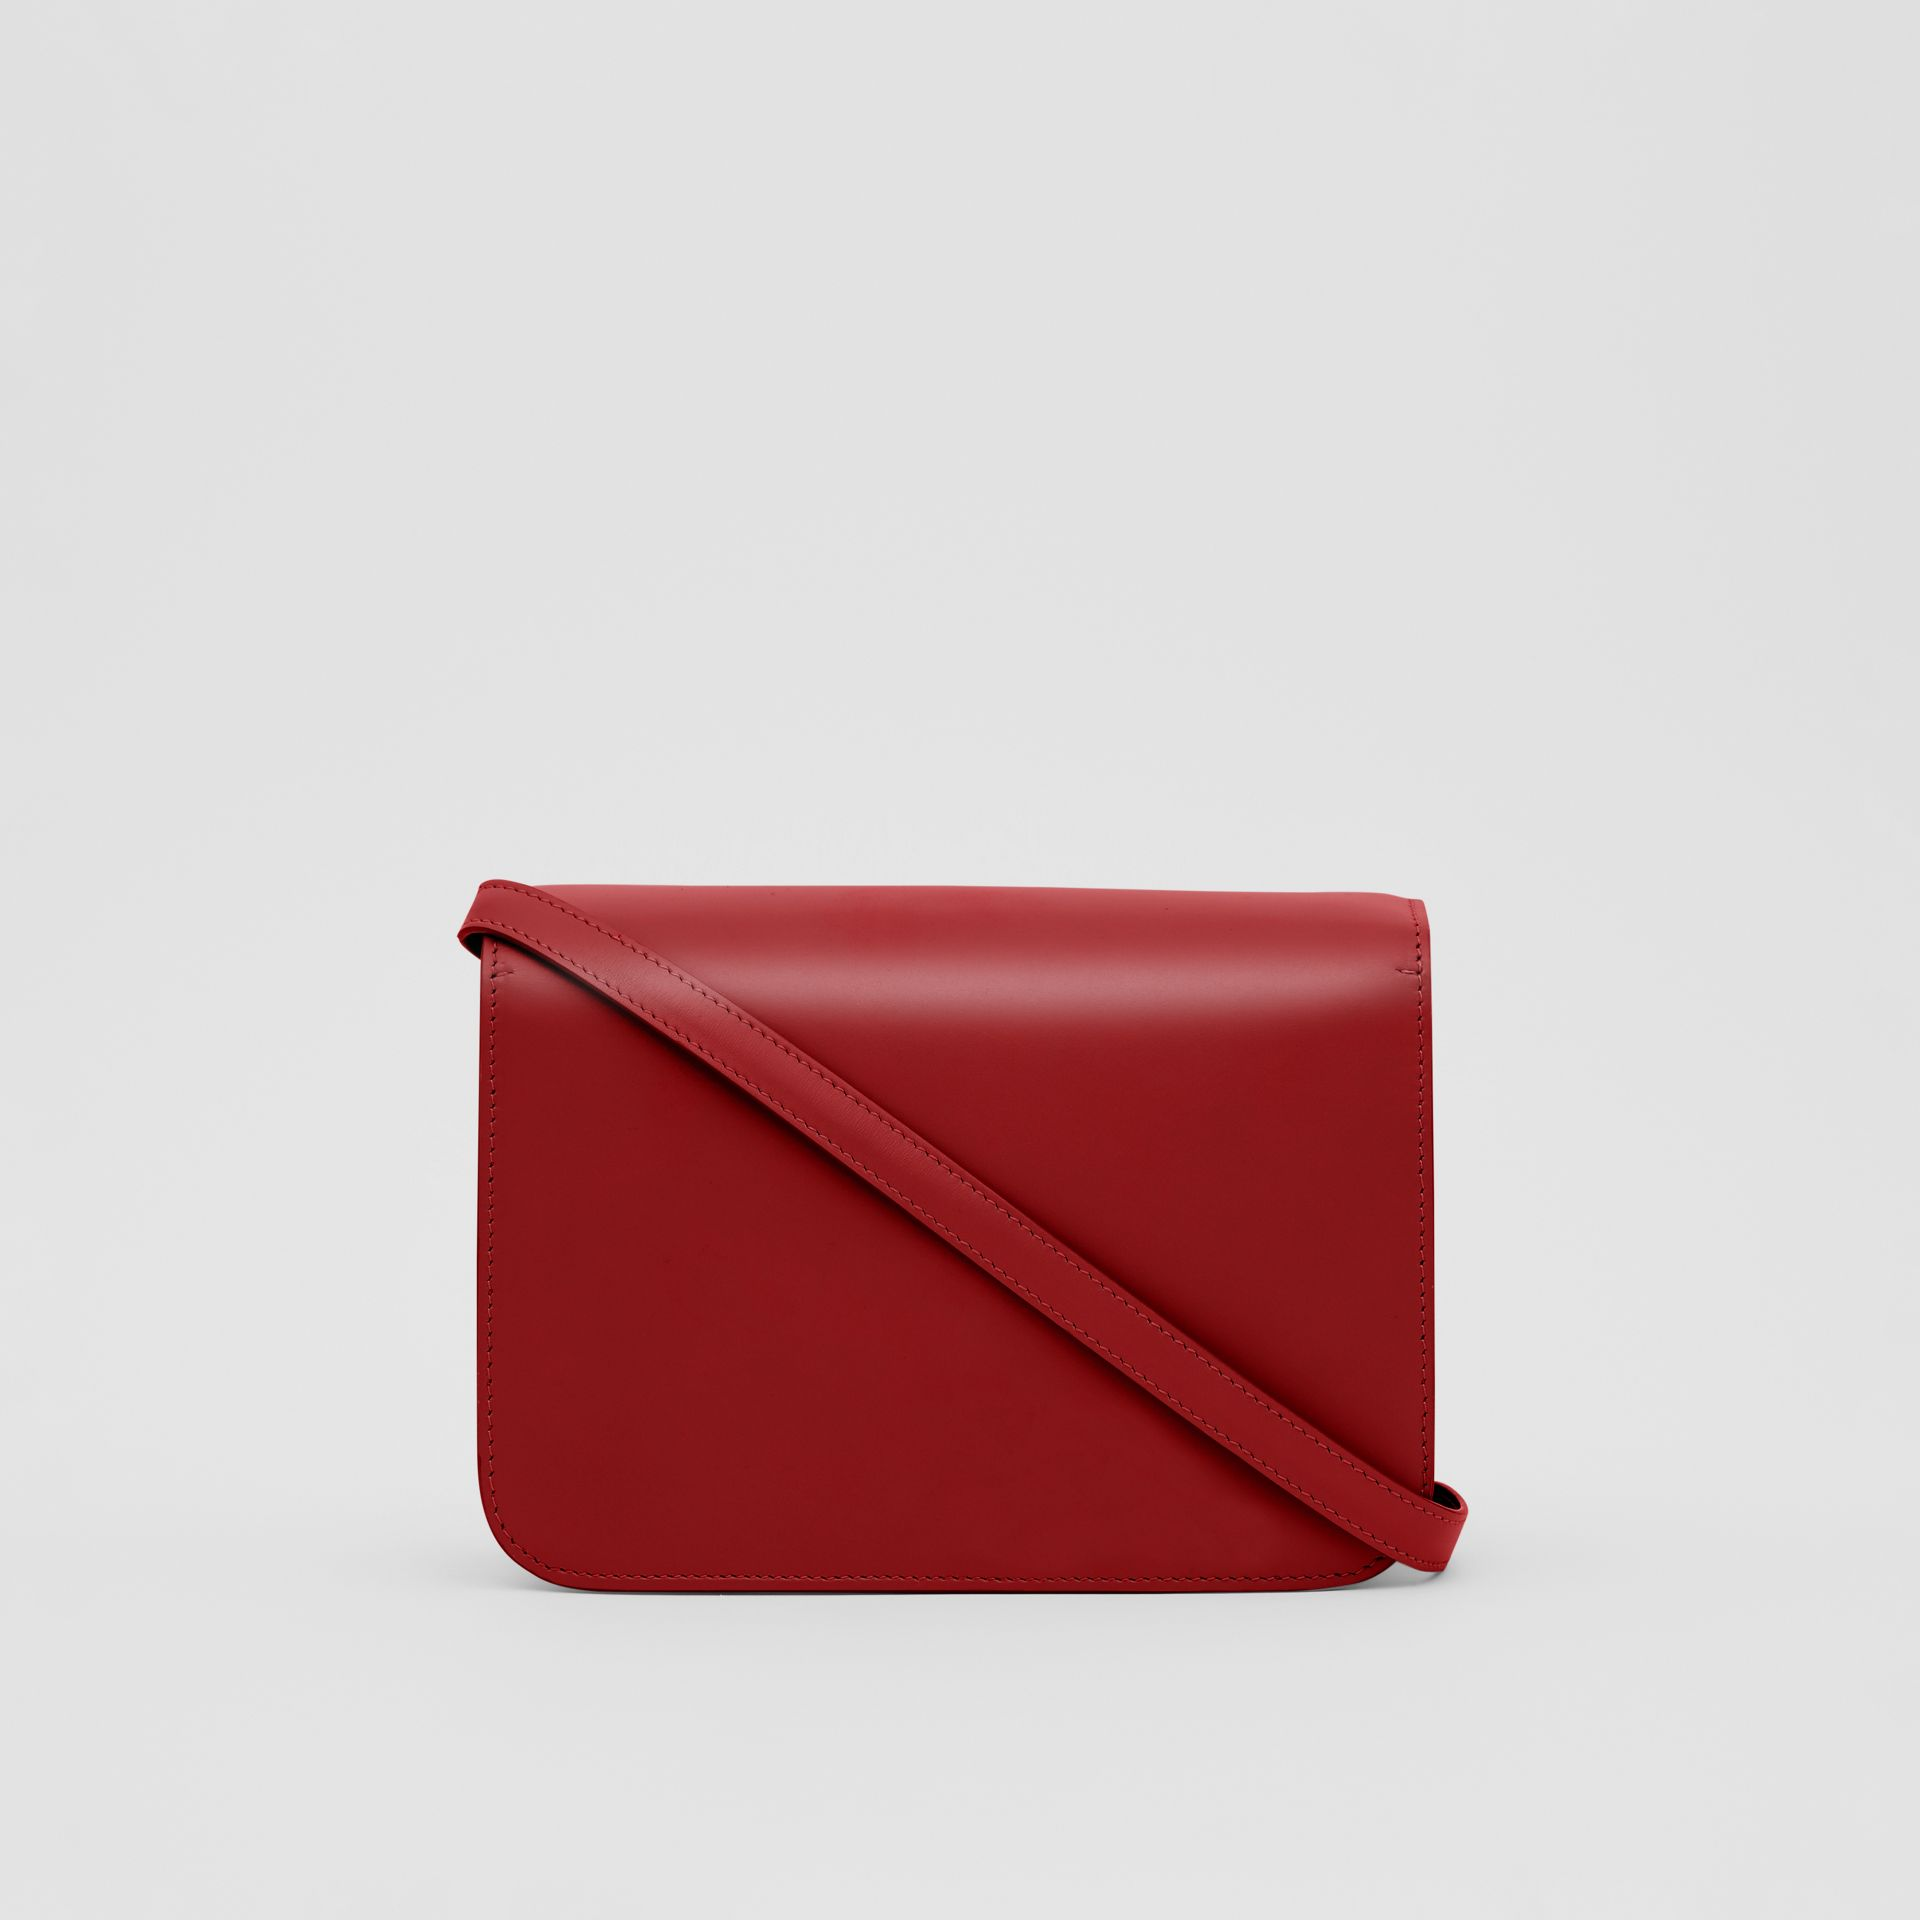 Small Leather TB Bag in Dark Carmine - Women | Burberry Australia - gallery image 5